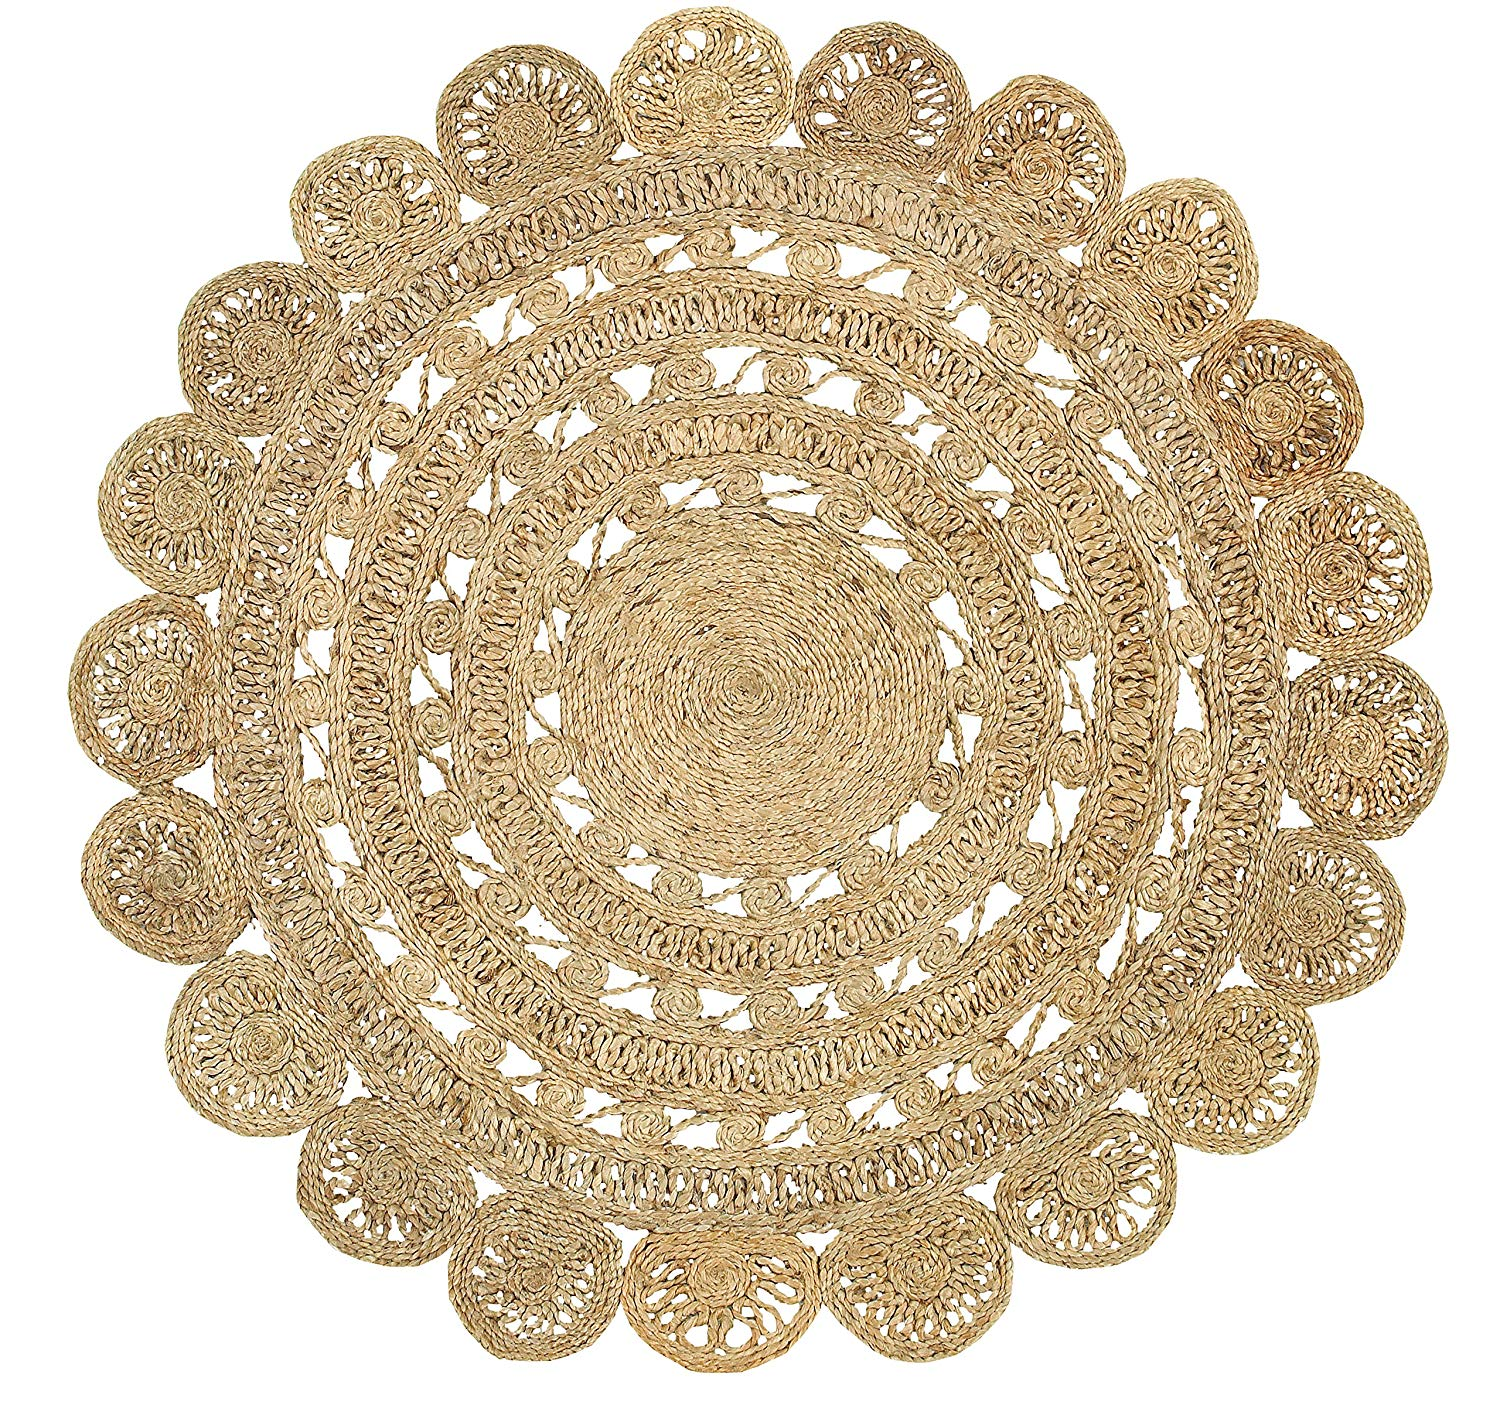 World Market original unavailable; Round jute rug inspiration provided